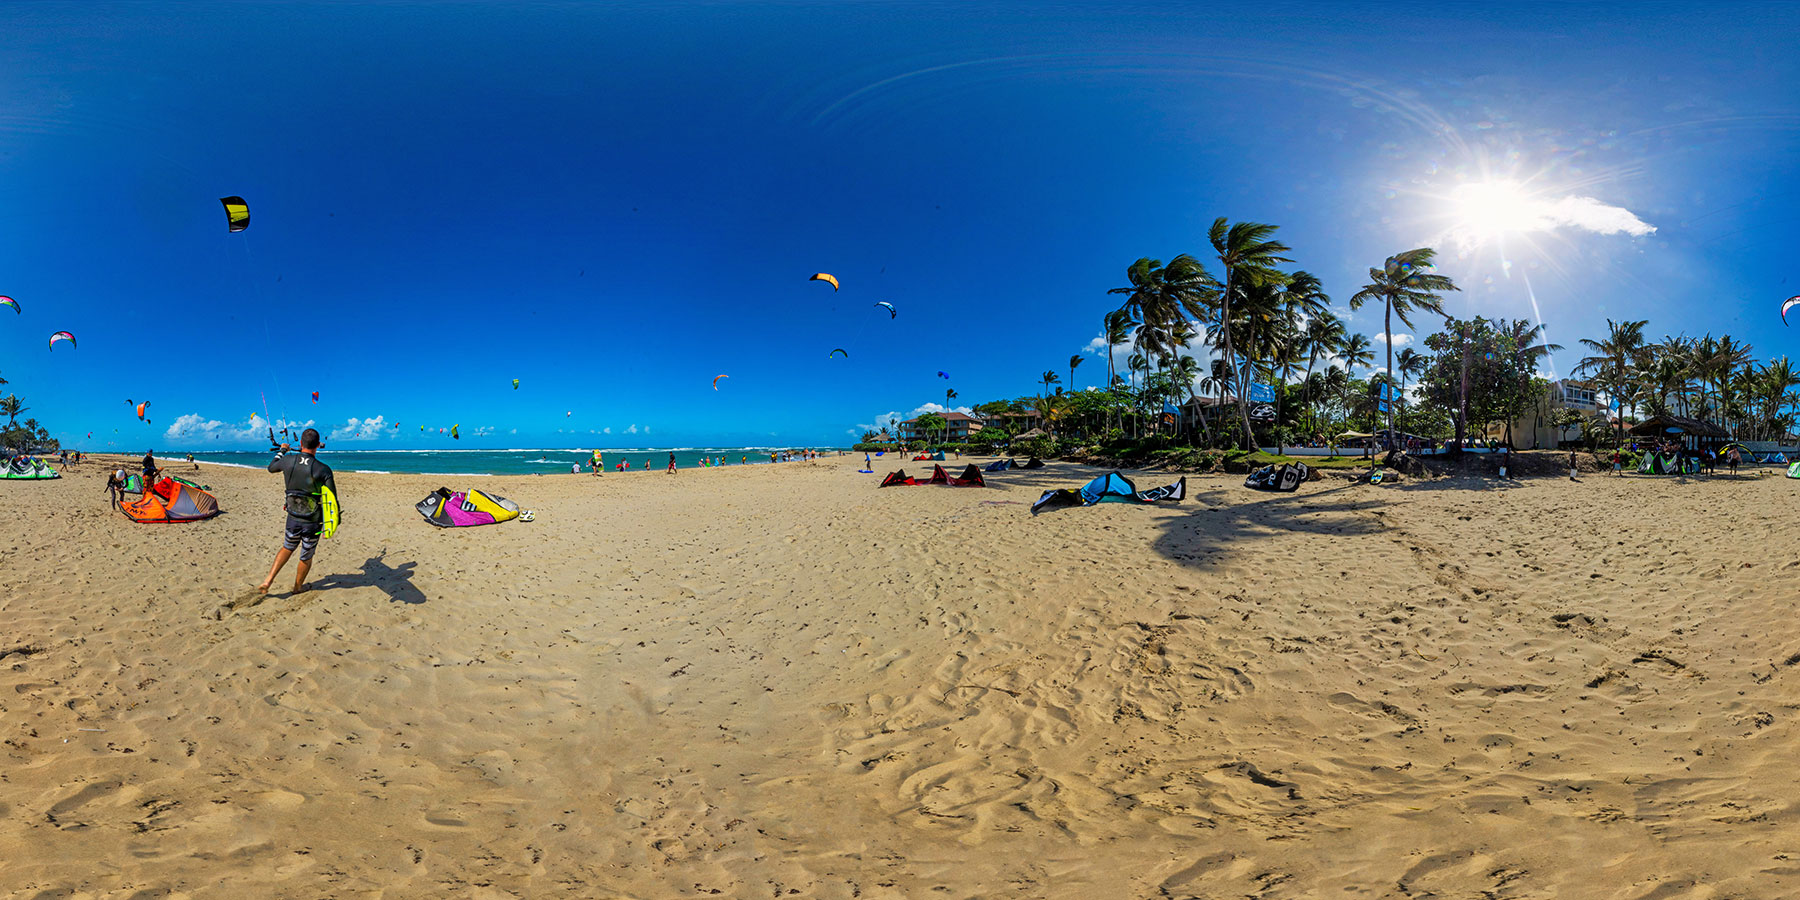 Cabarete-Kite-Beach2.jpg-for-Web